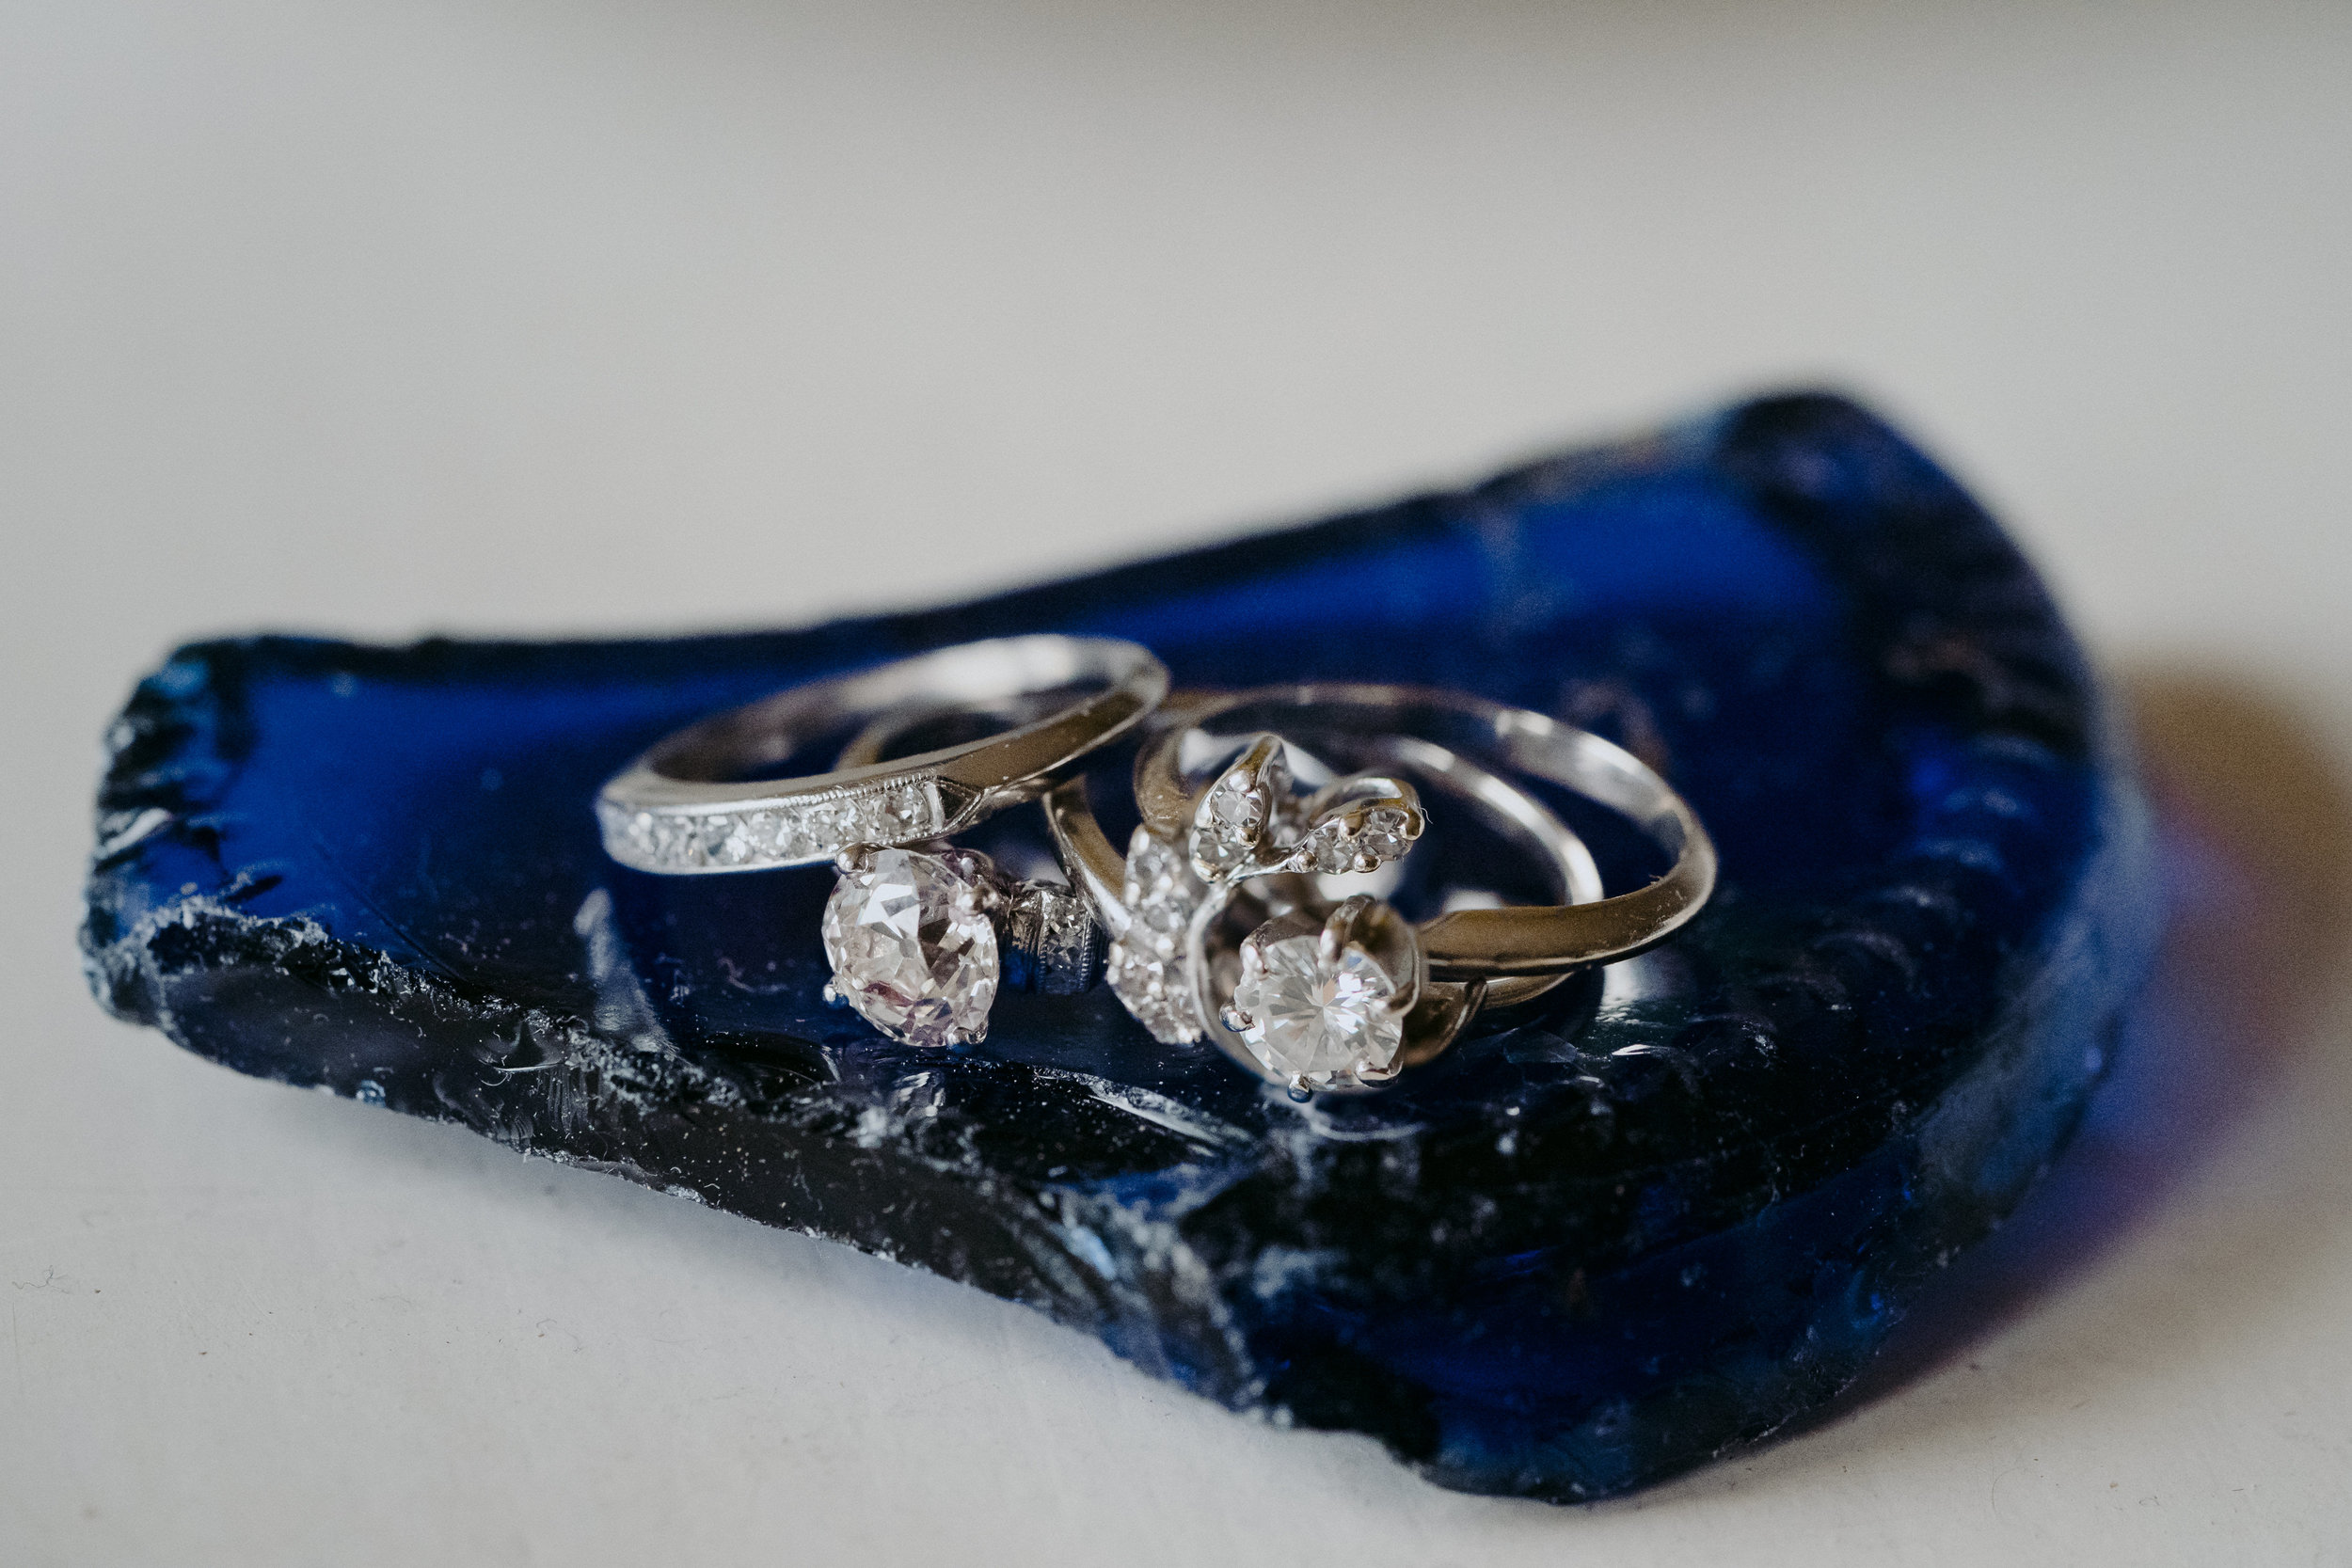 new-england-wedding-rings.jpg